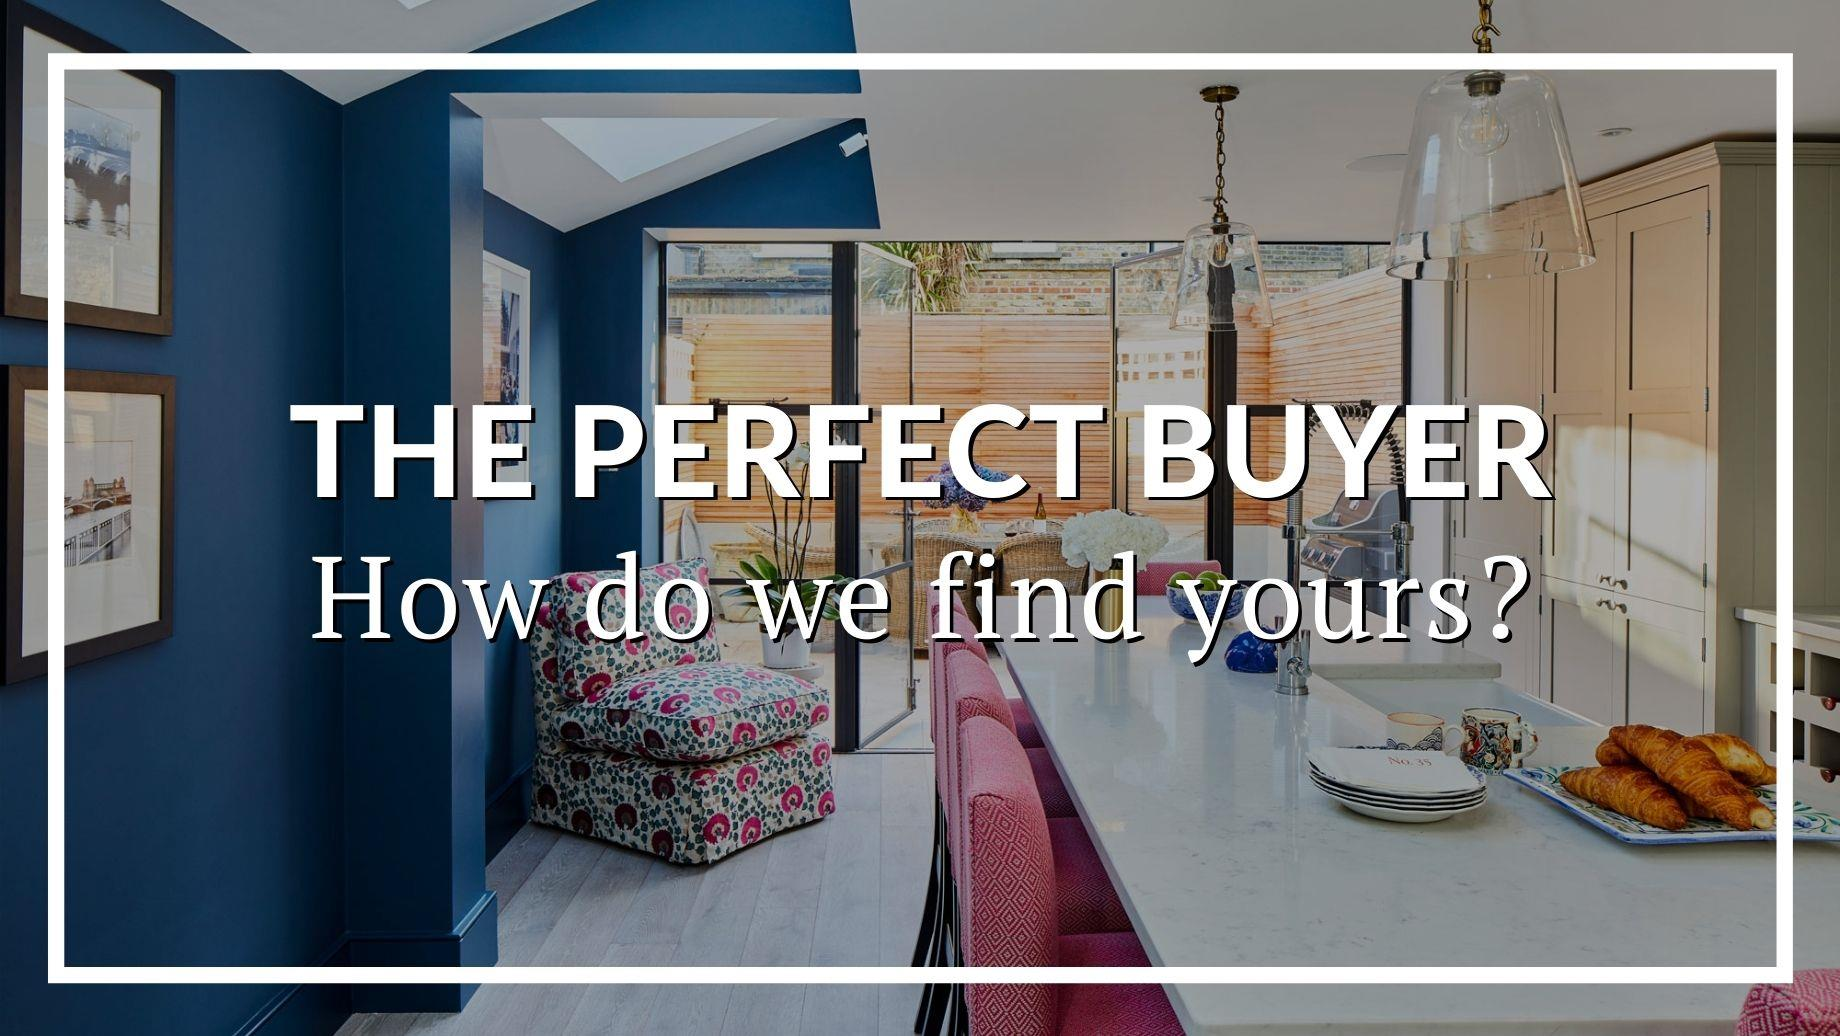 THE PERFECT BUYER: HOW DO WE FIND YOURS?